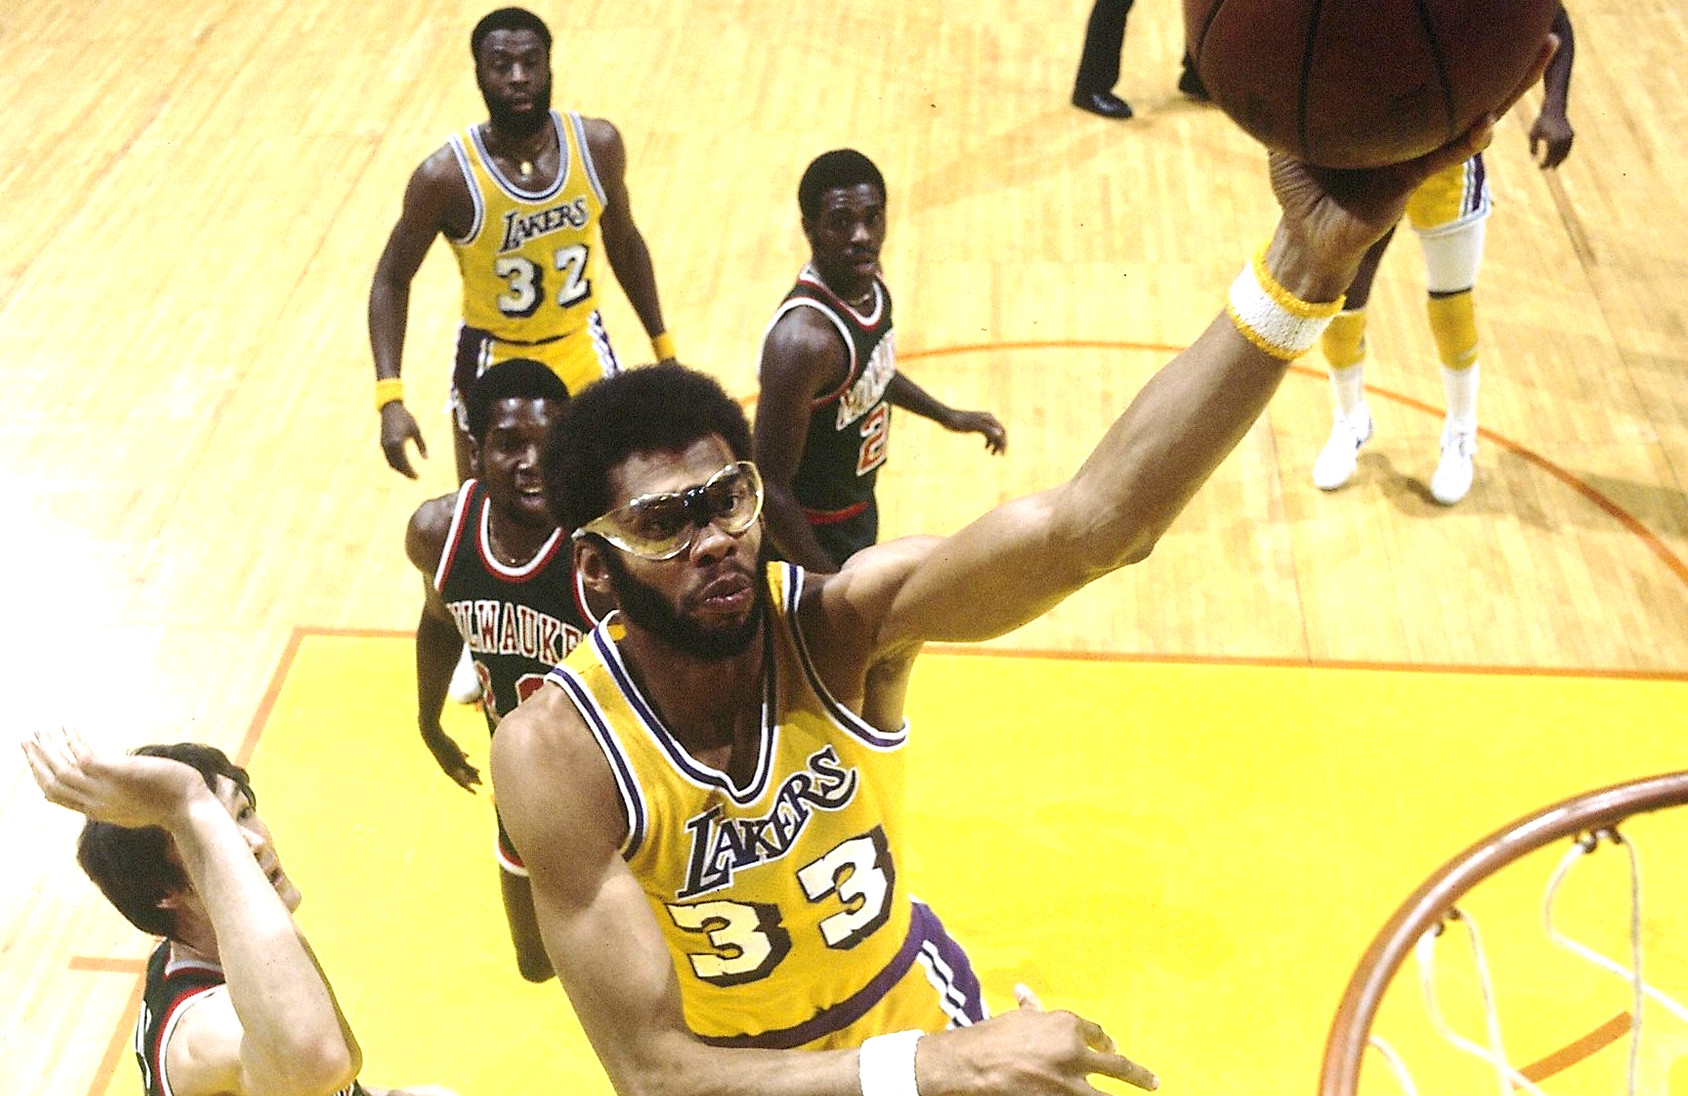 Kareem Abdul-Jabbar, Los Angeles Lakers